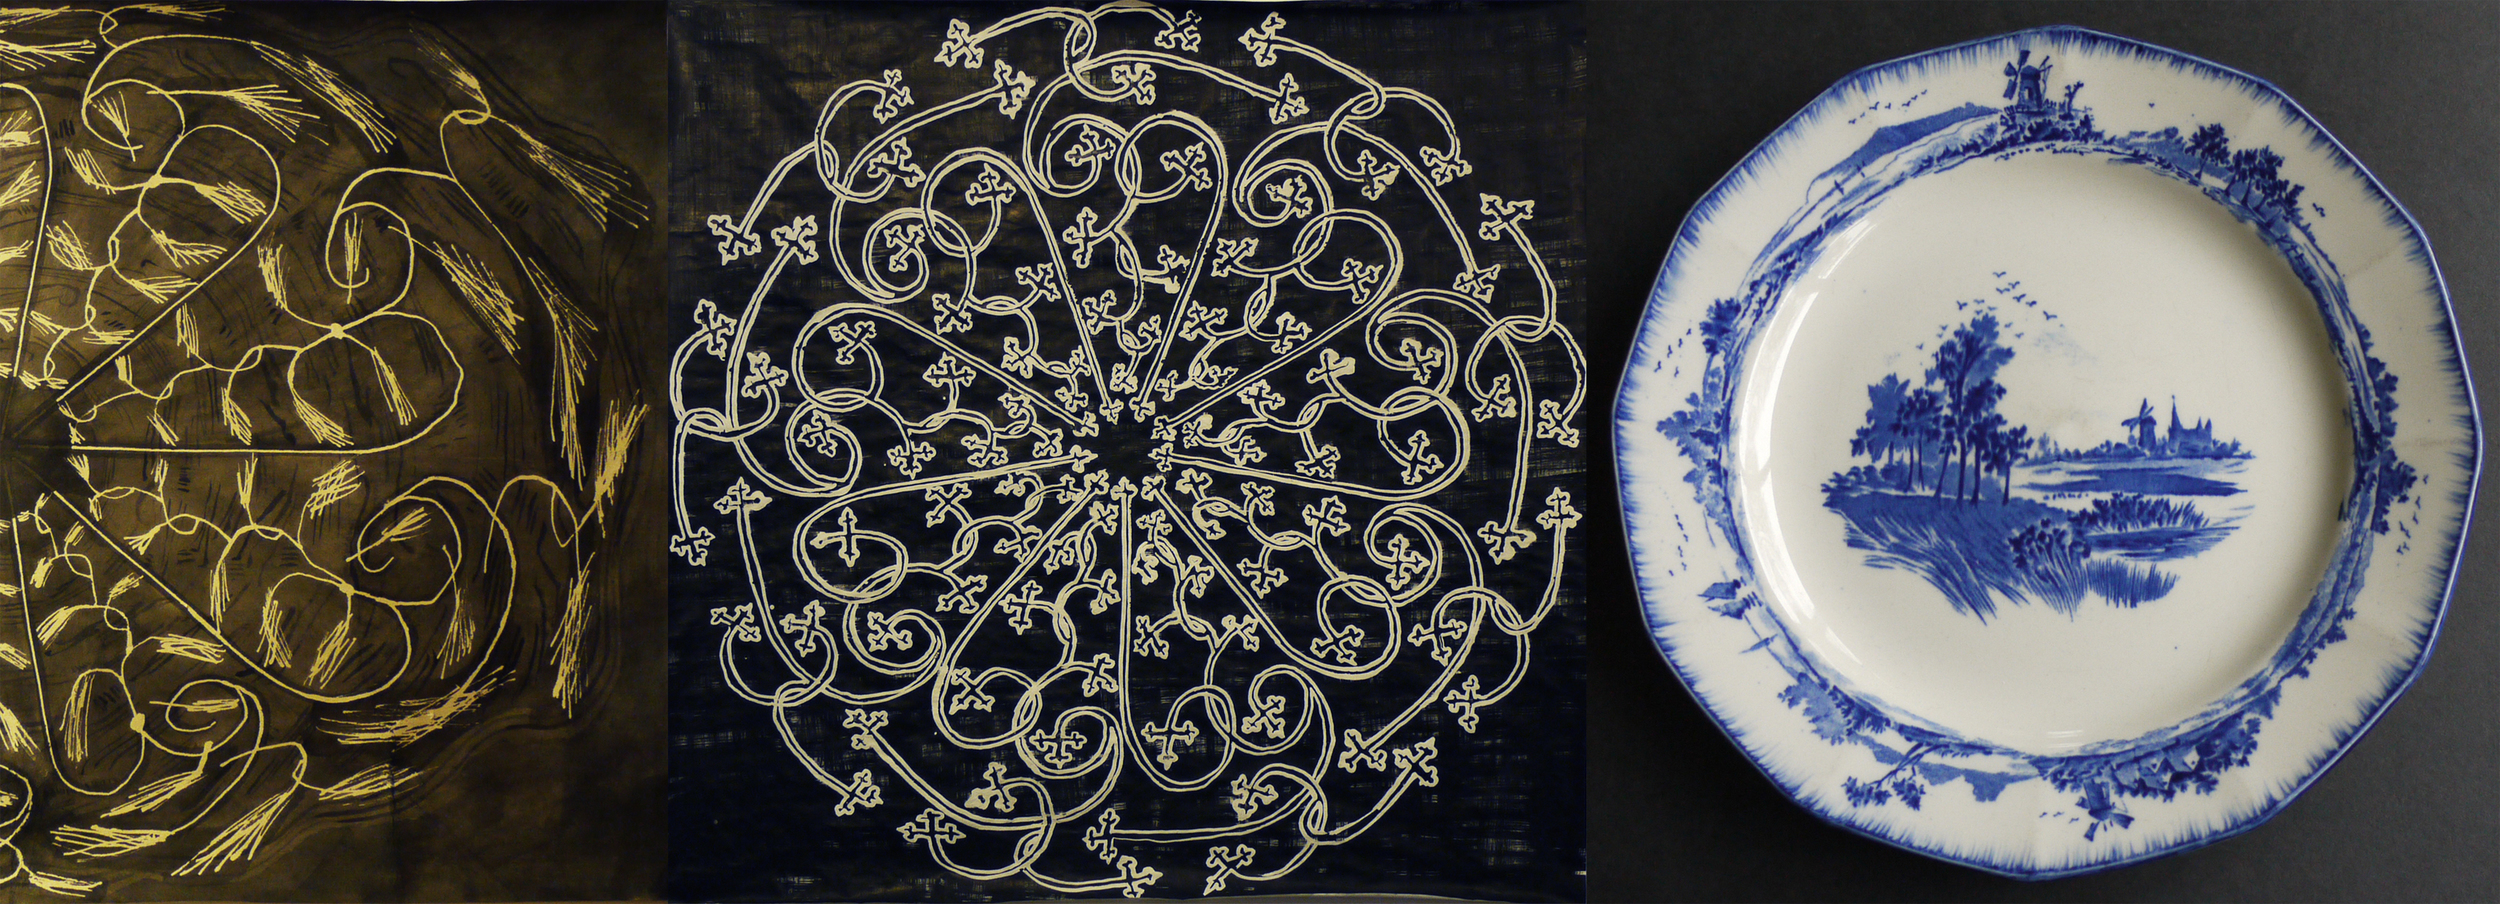 "Patterns with curling lines pointing inwards                                                 ""Norfolk"" plate"